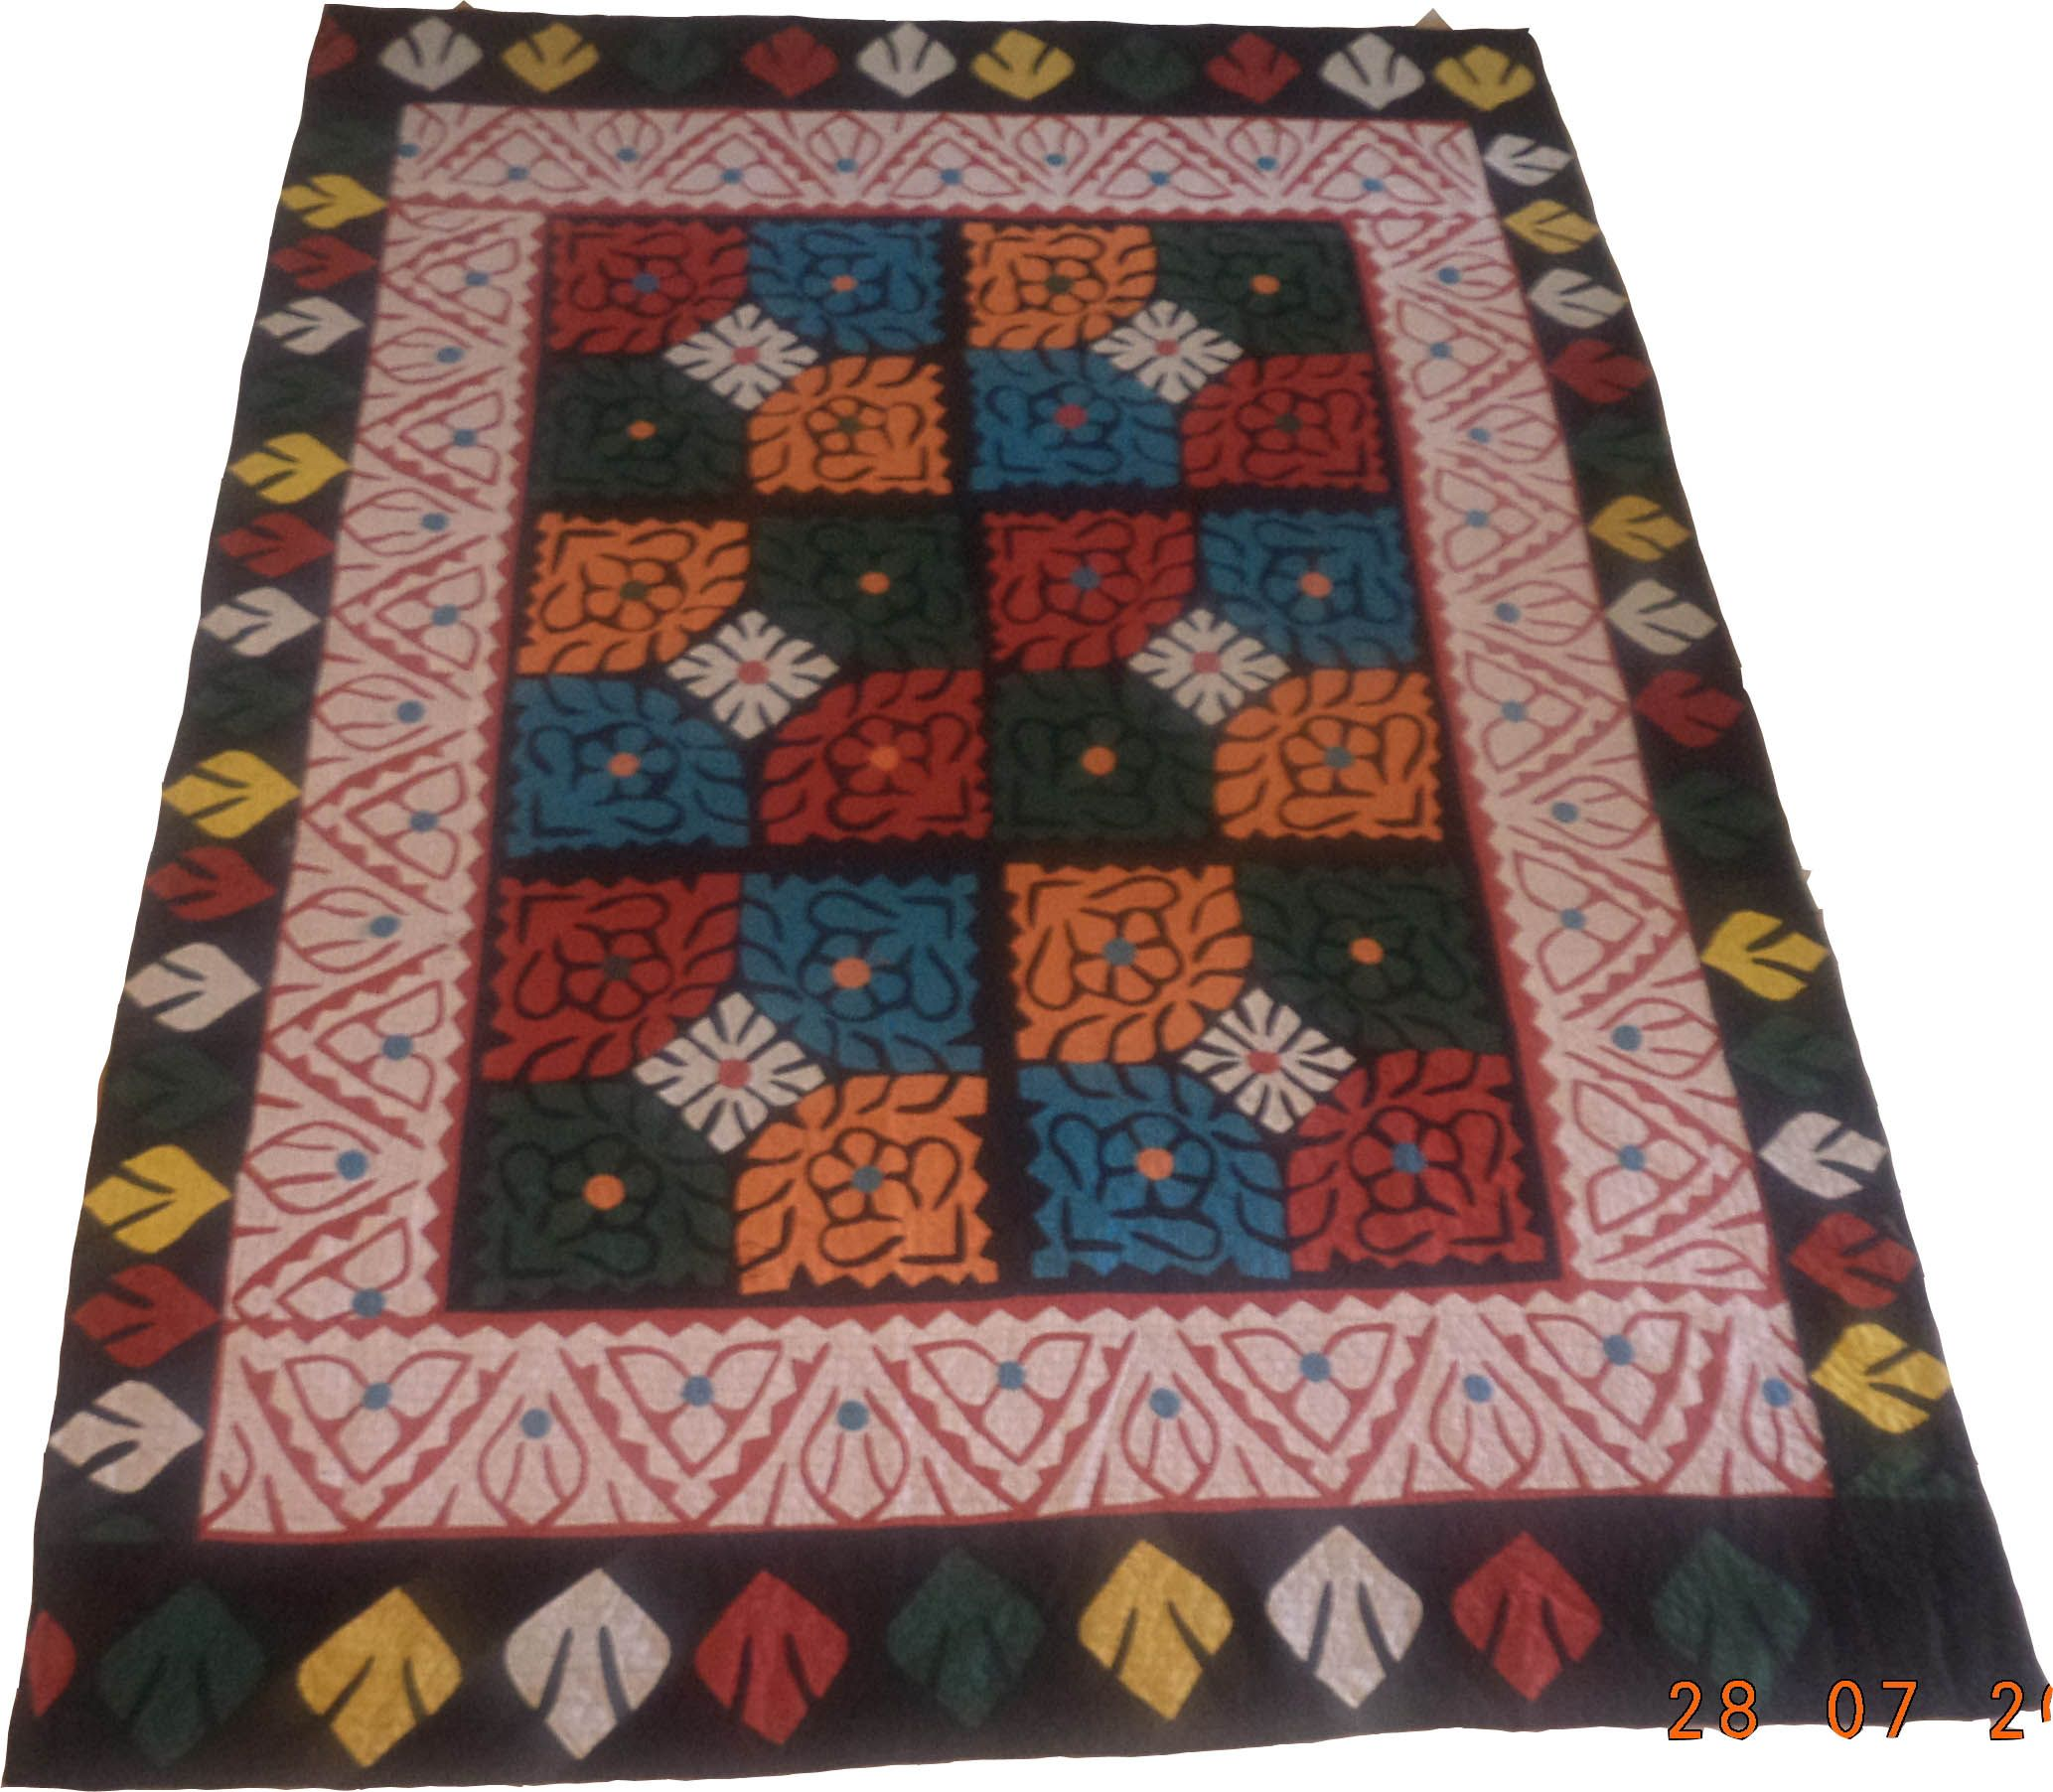 Sindhi Ralli Quilt Product Information: Product Code: SV-950